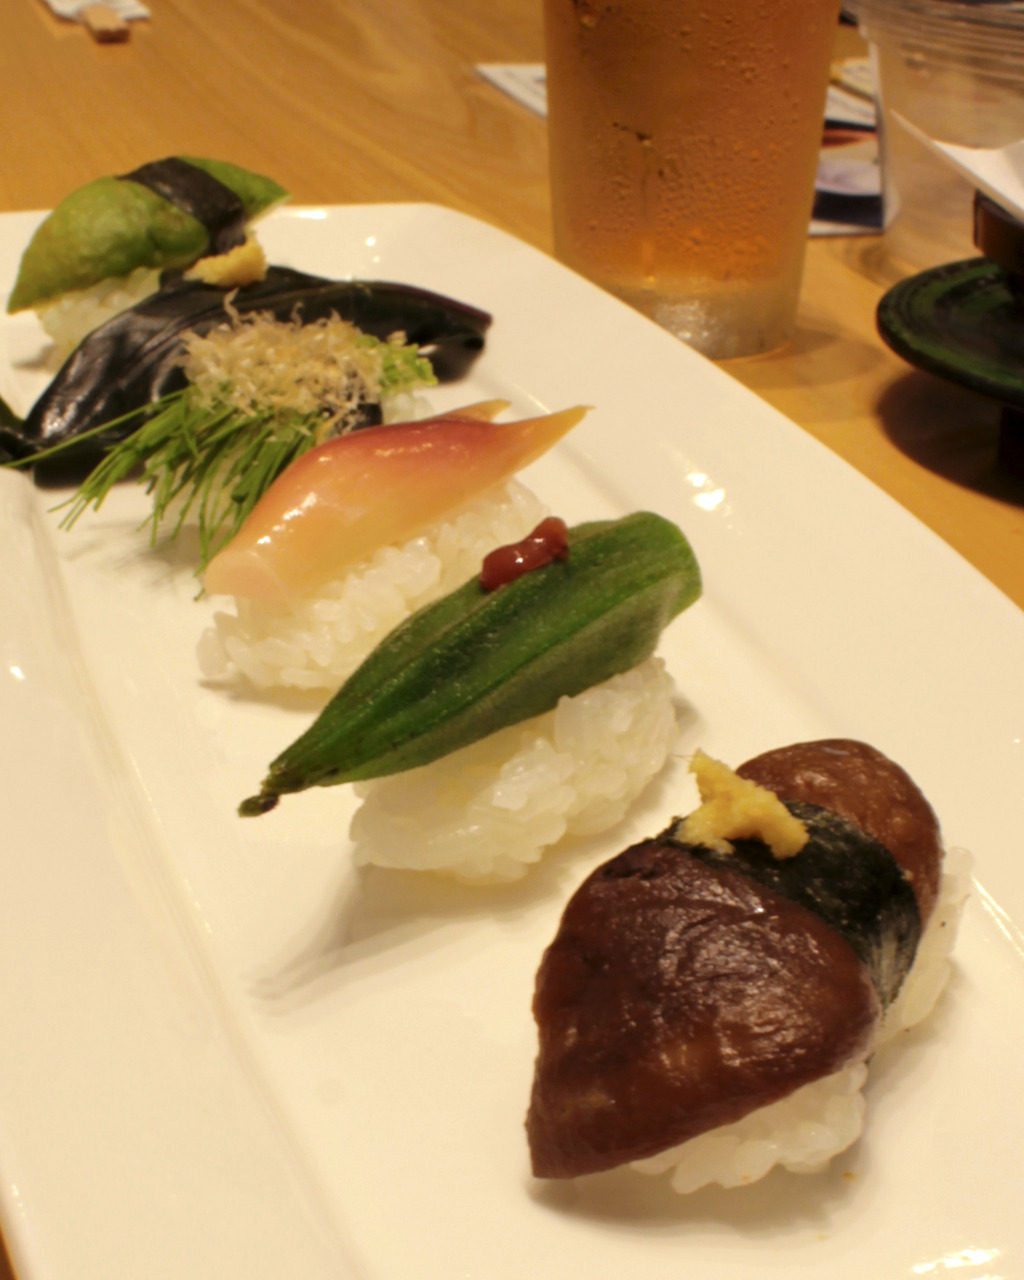 Vegetable sushi platter at Sushi Kuine in Kanazawa, Japan